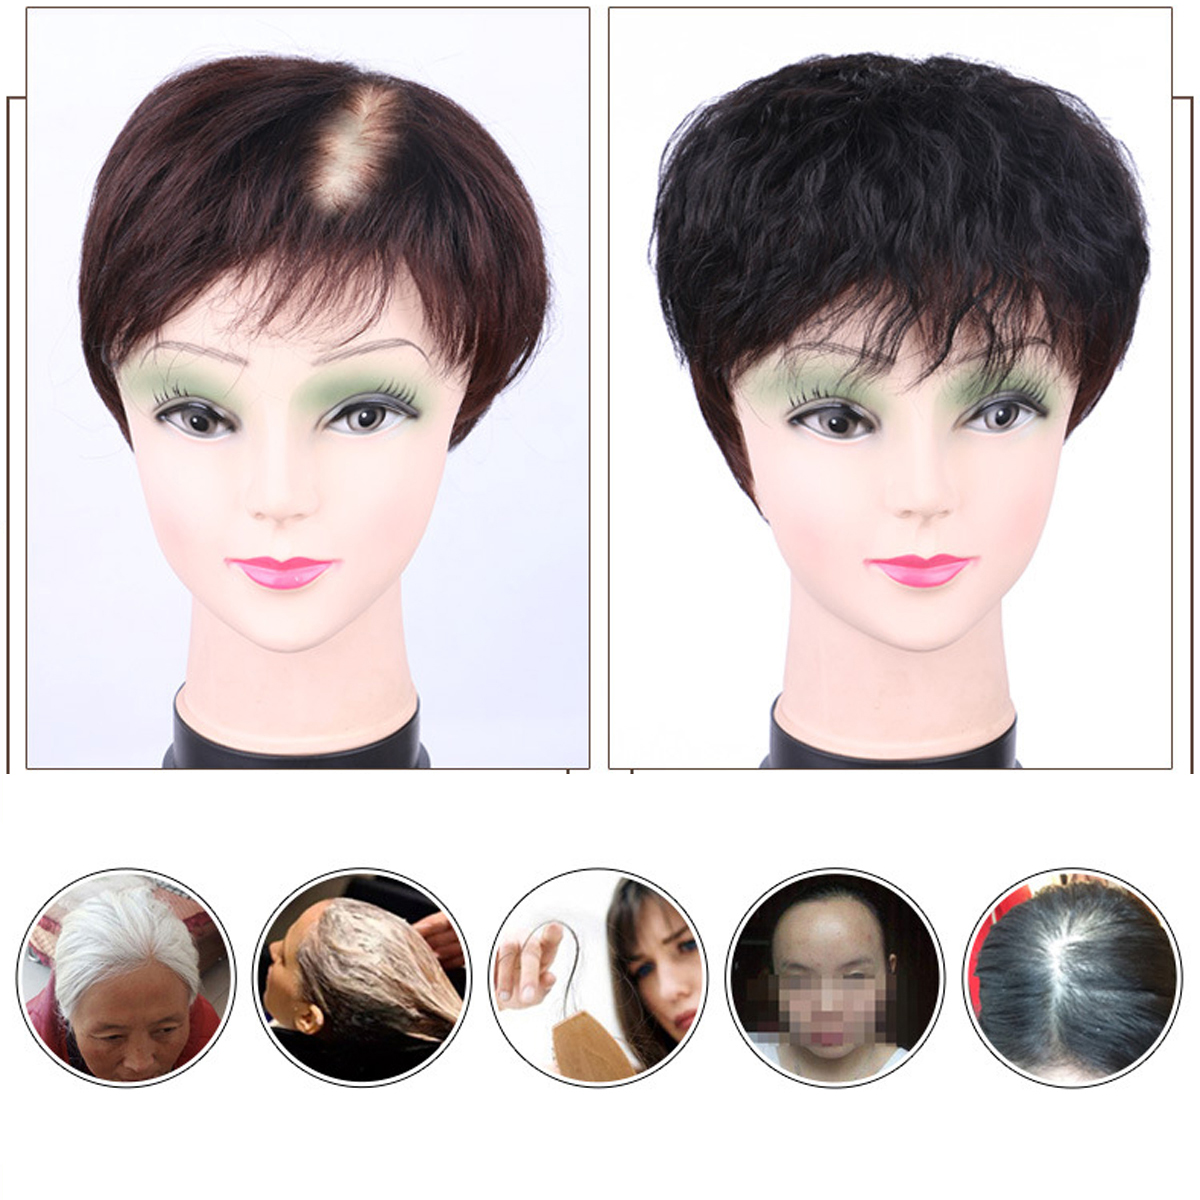 Details about 12% Human Hair Short Wigs Topper Toupee Hairpiece Top Wig  12cm For Women Man